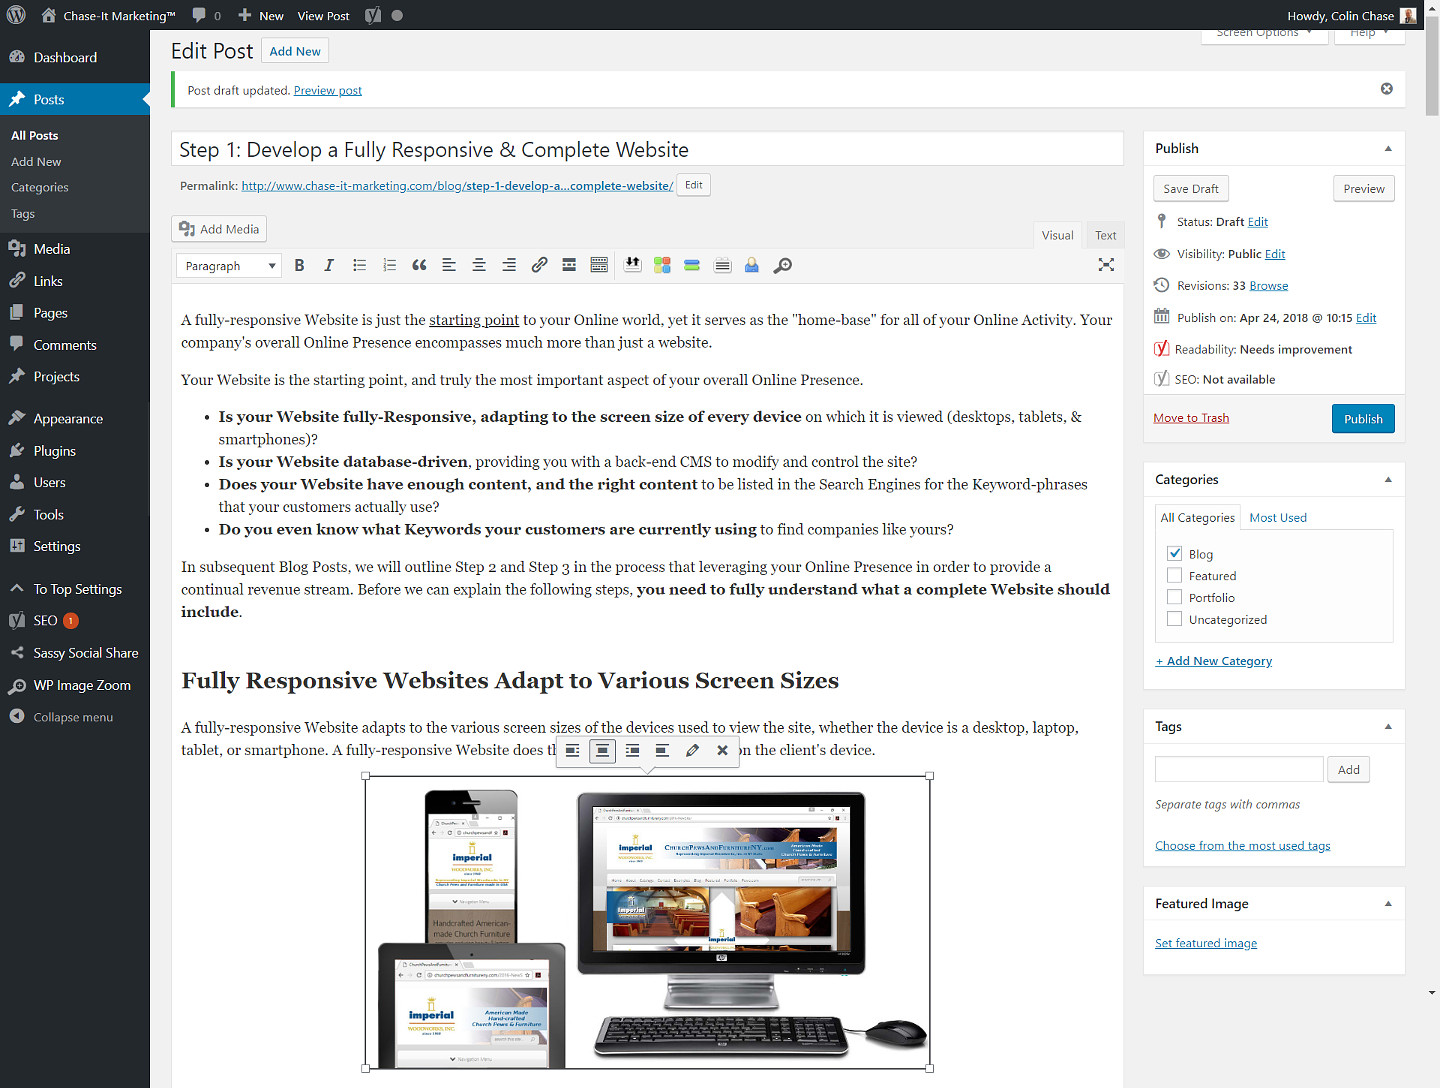 WordPress is easy-to-use with little training needed for Authors of the articles - Chase-It-Marketing